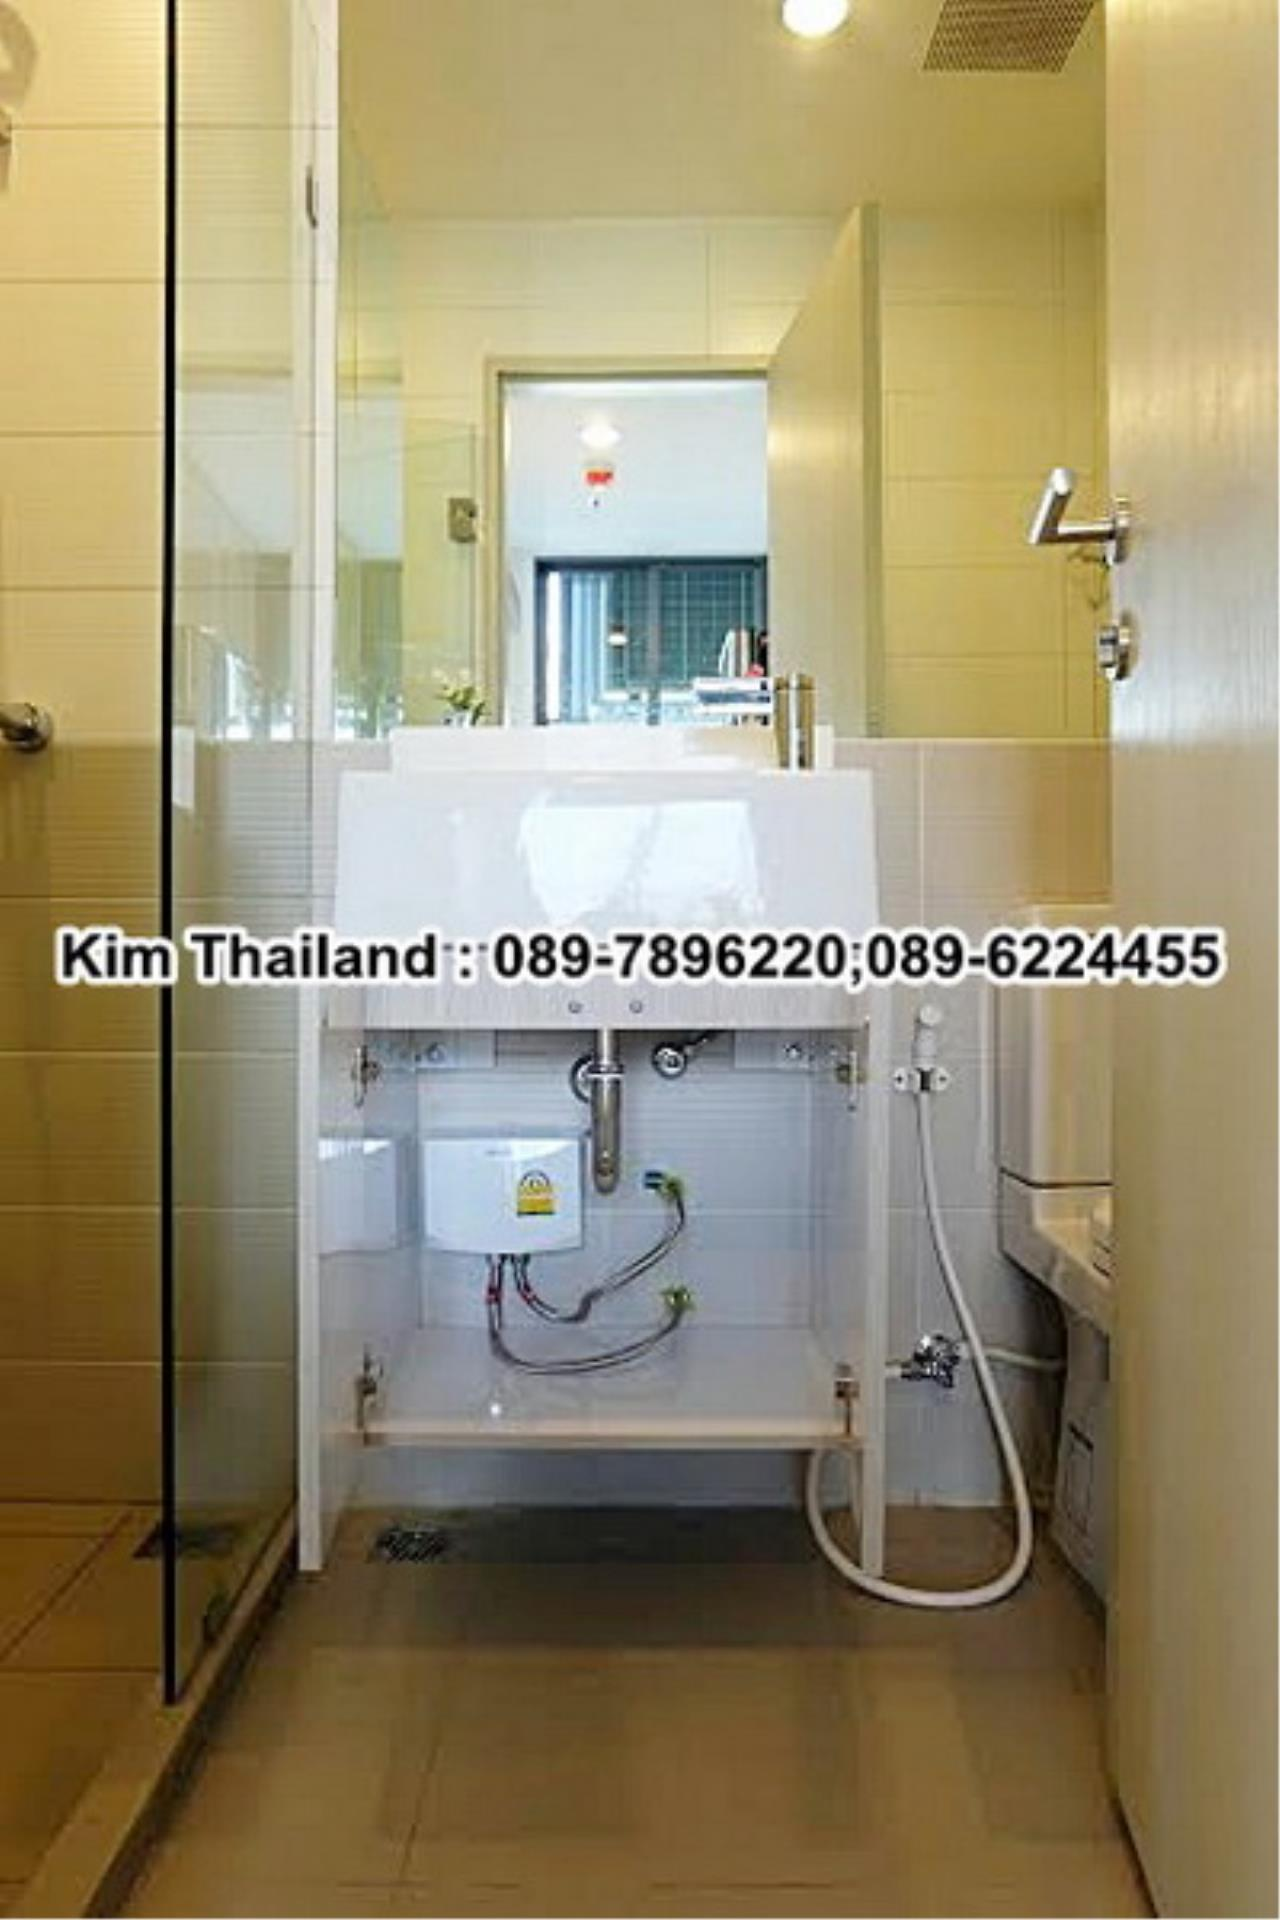 BKKcondorental Agency's Condo for rent,Condo Ideo Q Samyan. Area 29 sqm. 1 bedroom.  Rent 23,000 baht /month. 3